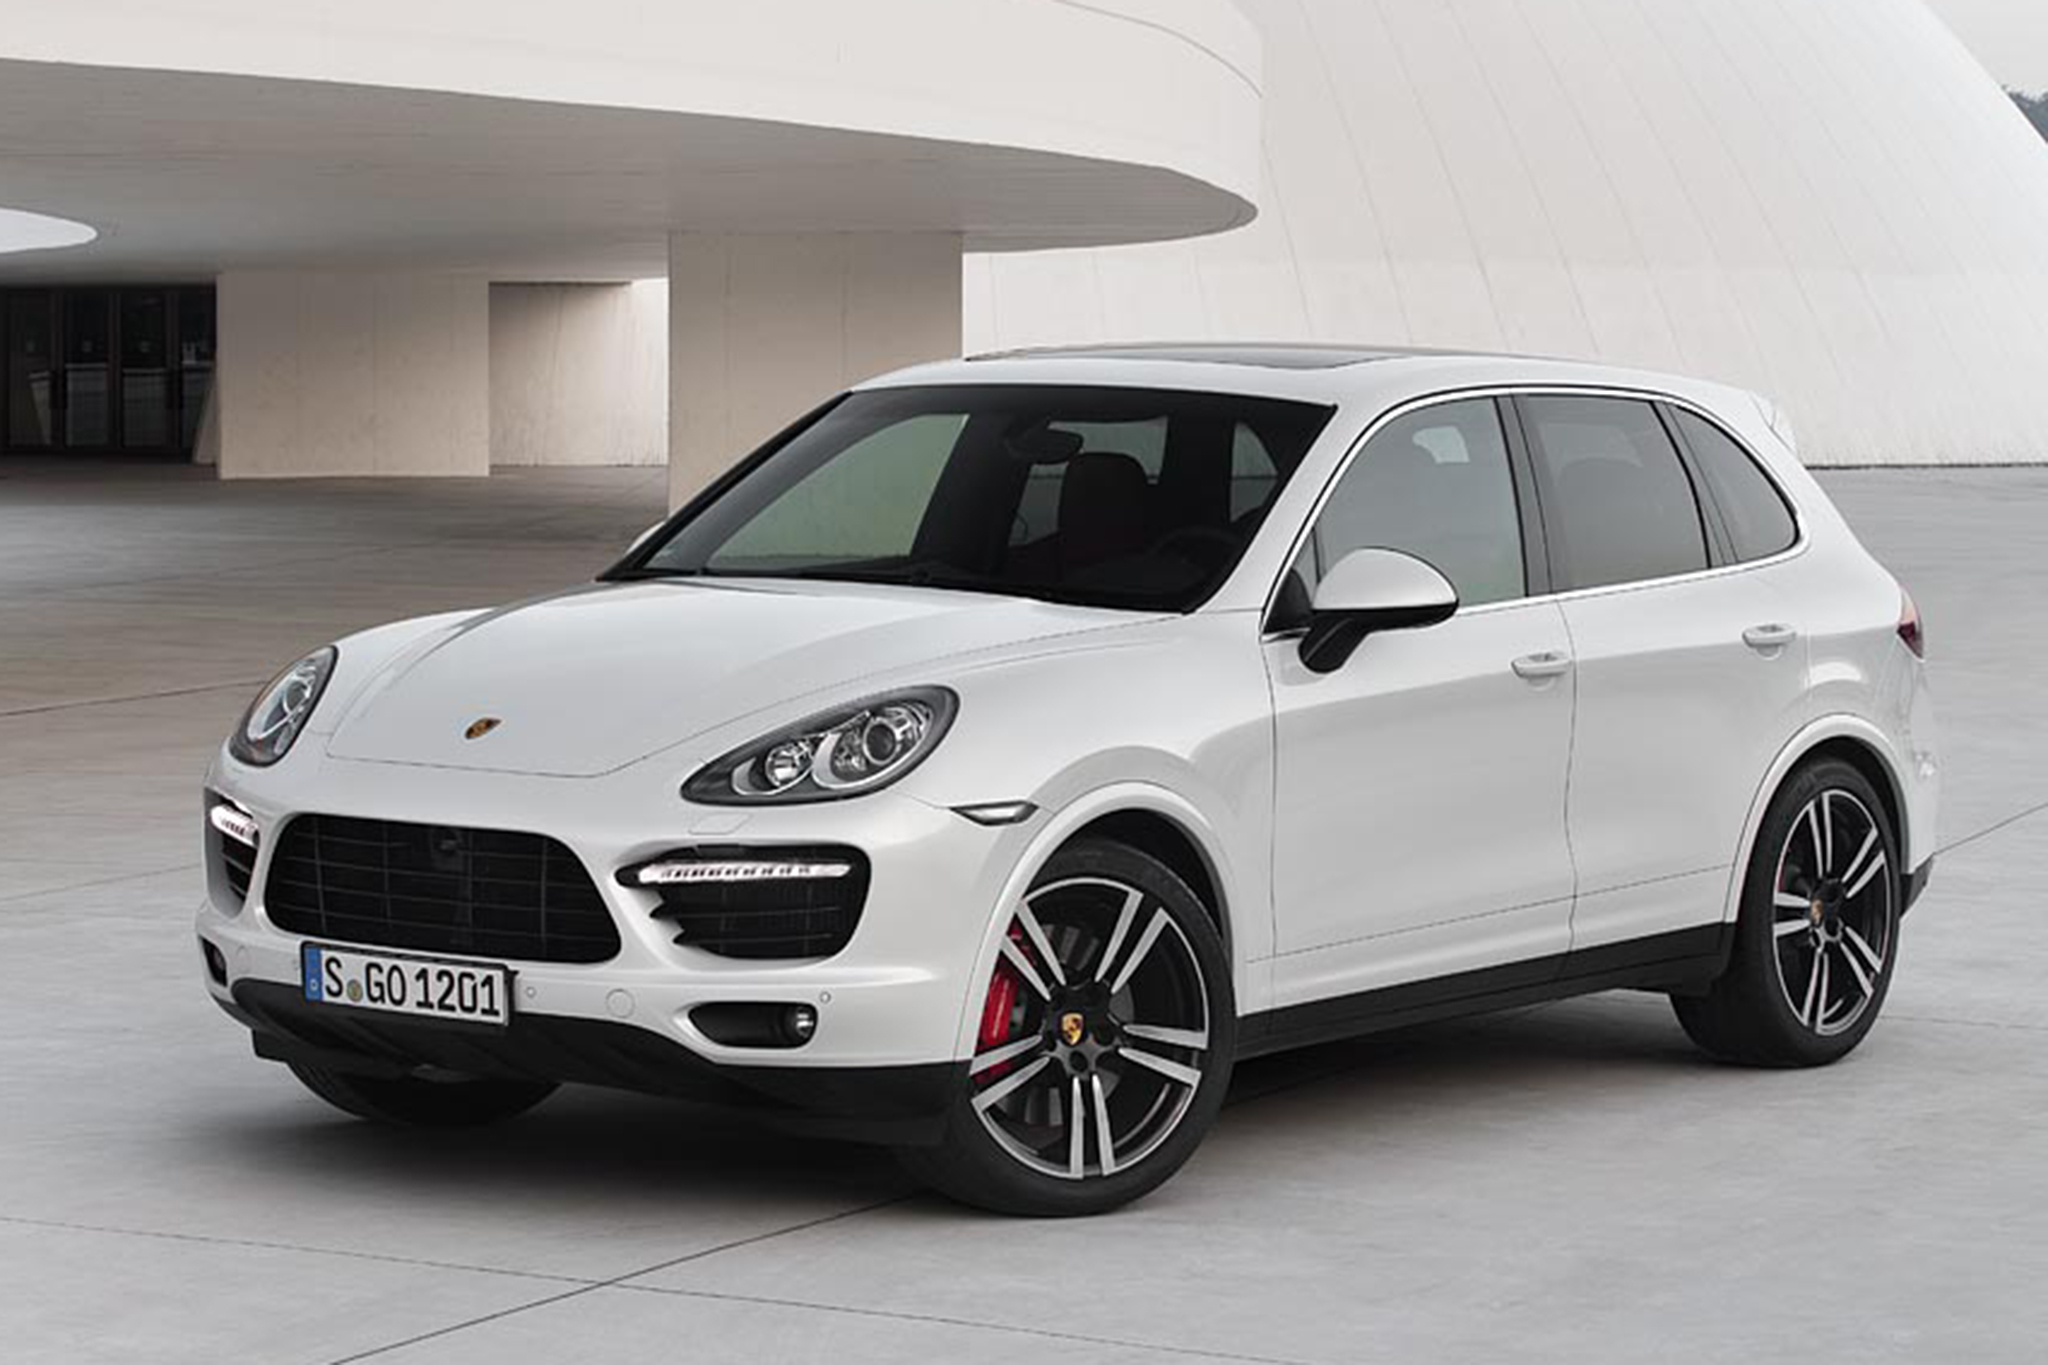 Porsche Cayenne Specifications, Price, Mileage, Pics, Review